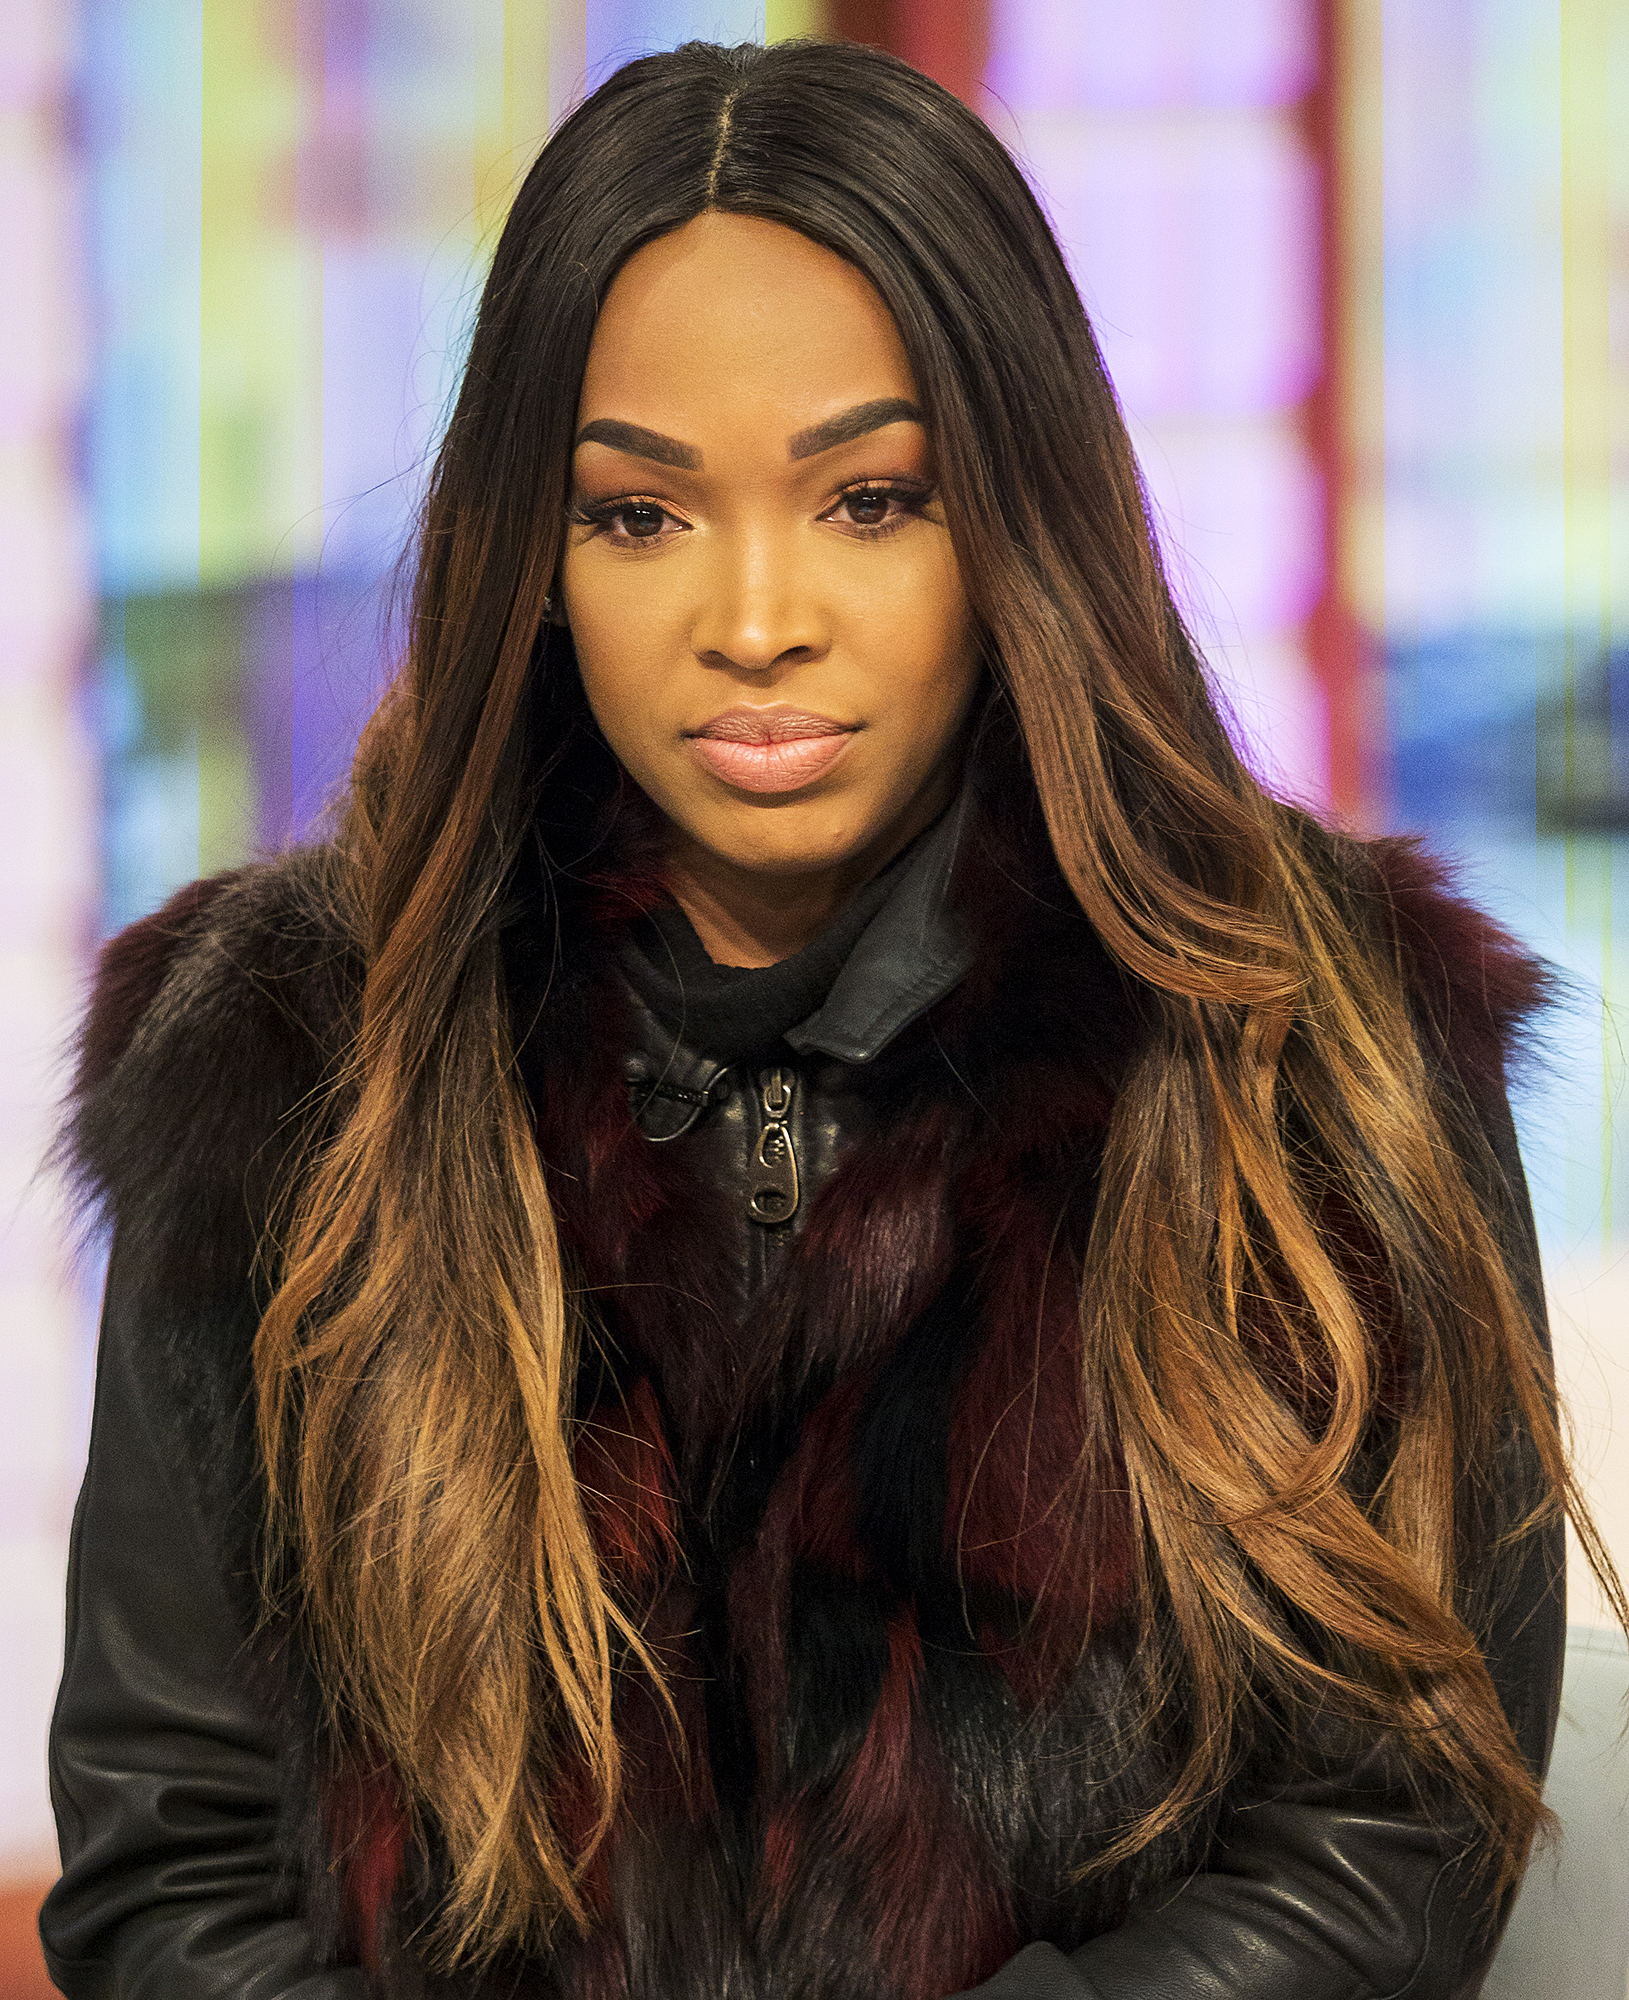 Malika-Haqq-Doesn't-Want-to-Hear-About-Her-Ex